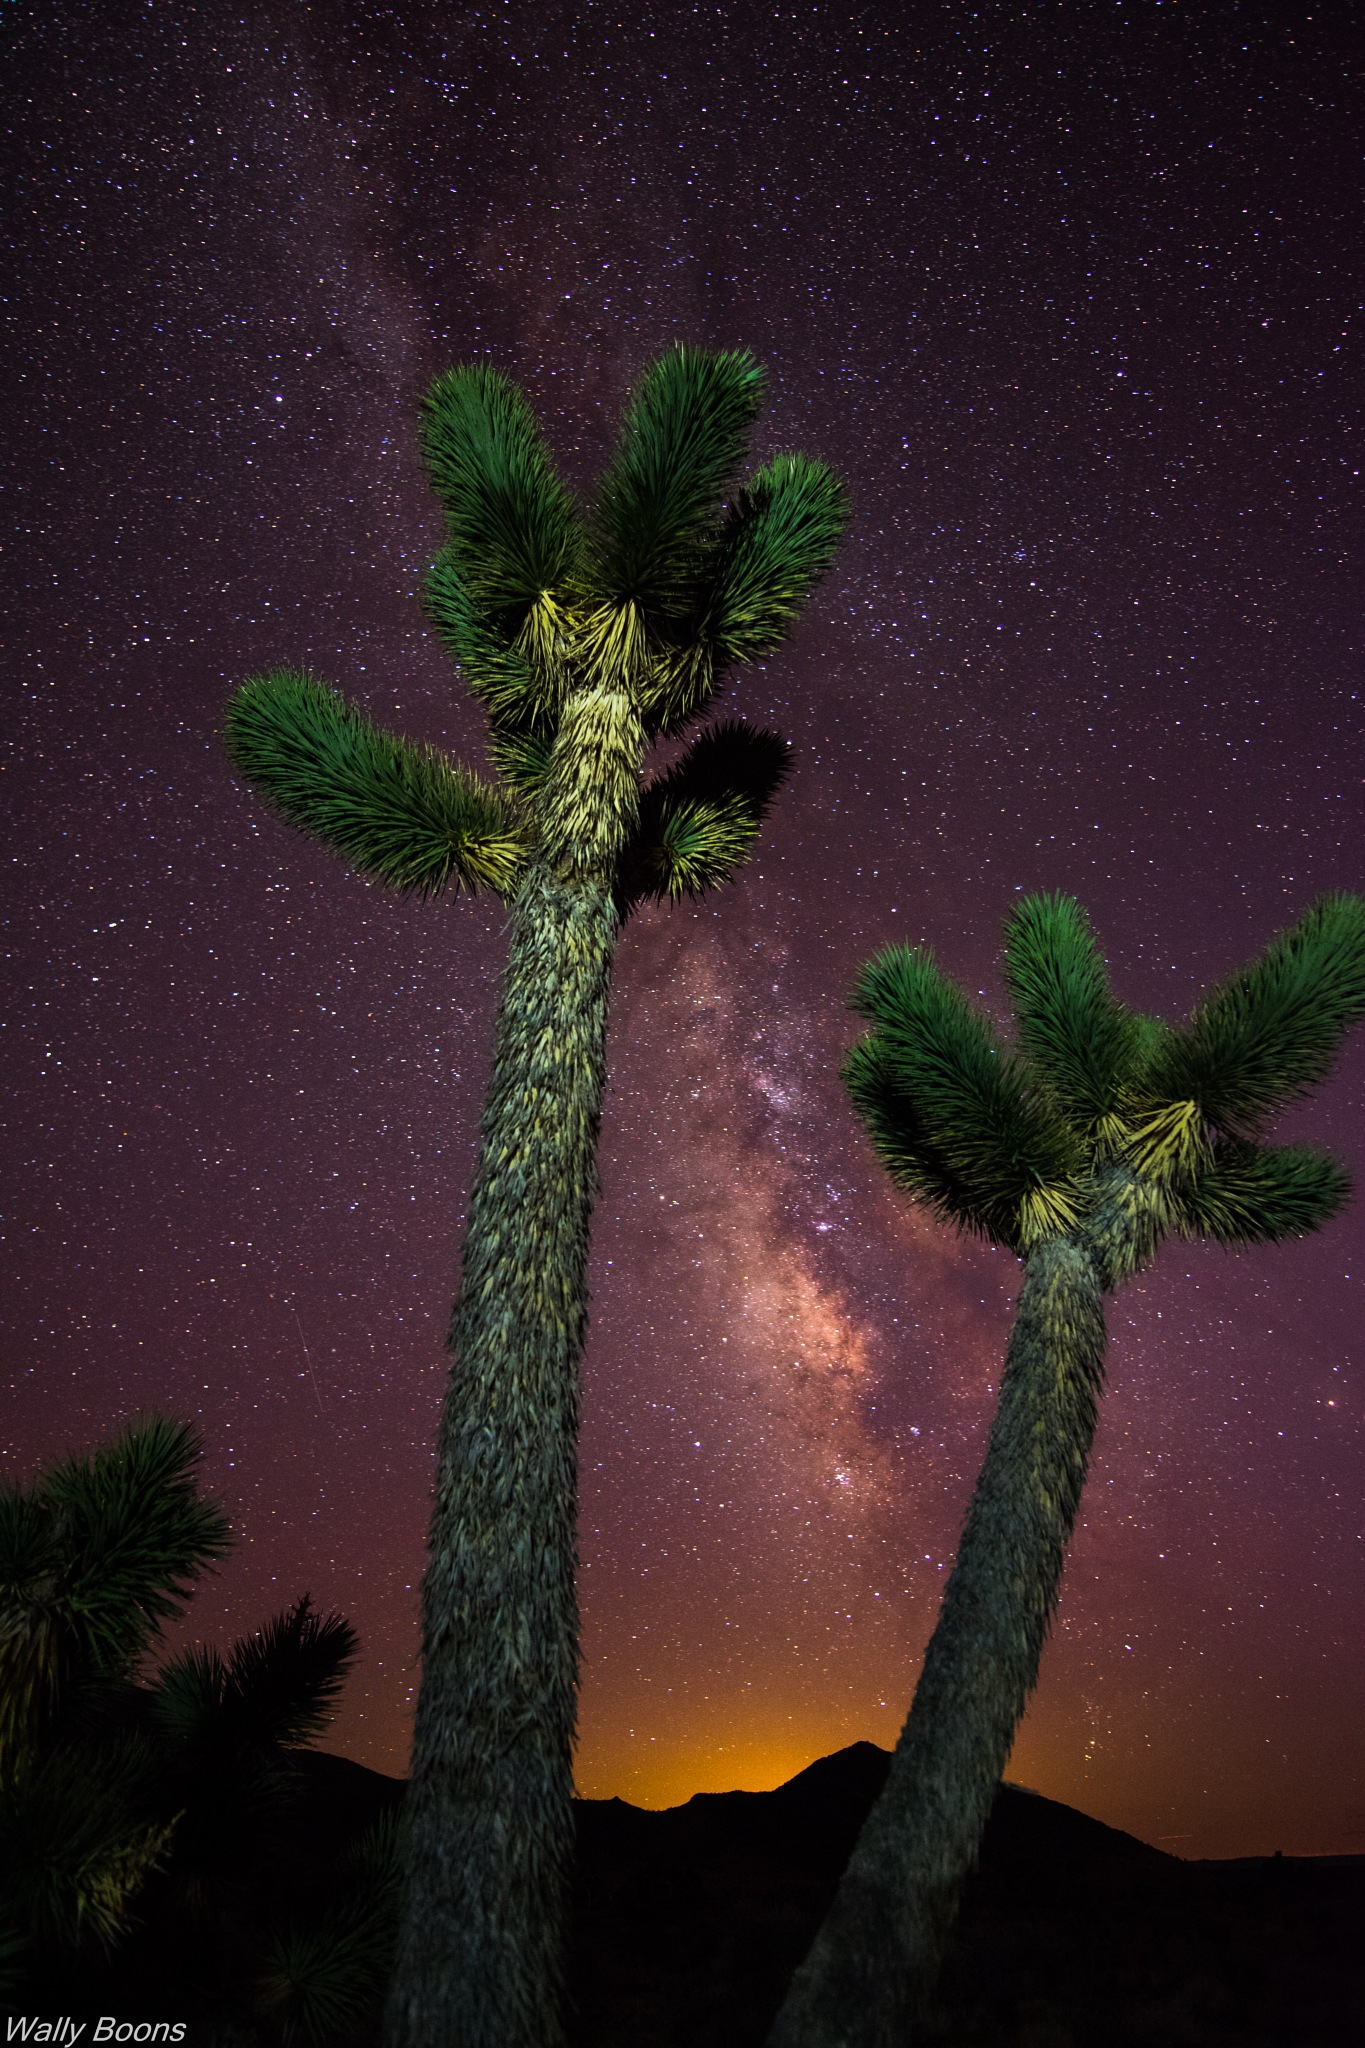 Twin Joshua trees and the milky way by Wally Boons